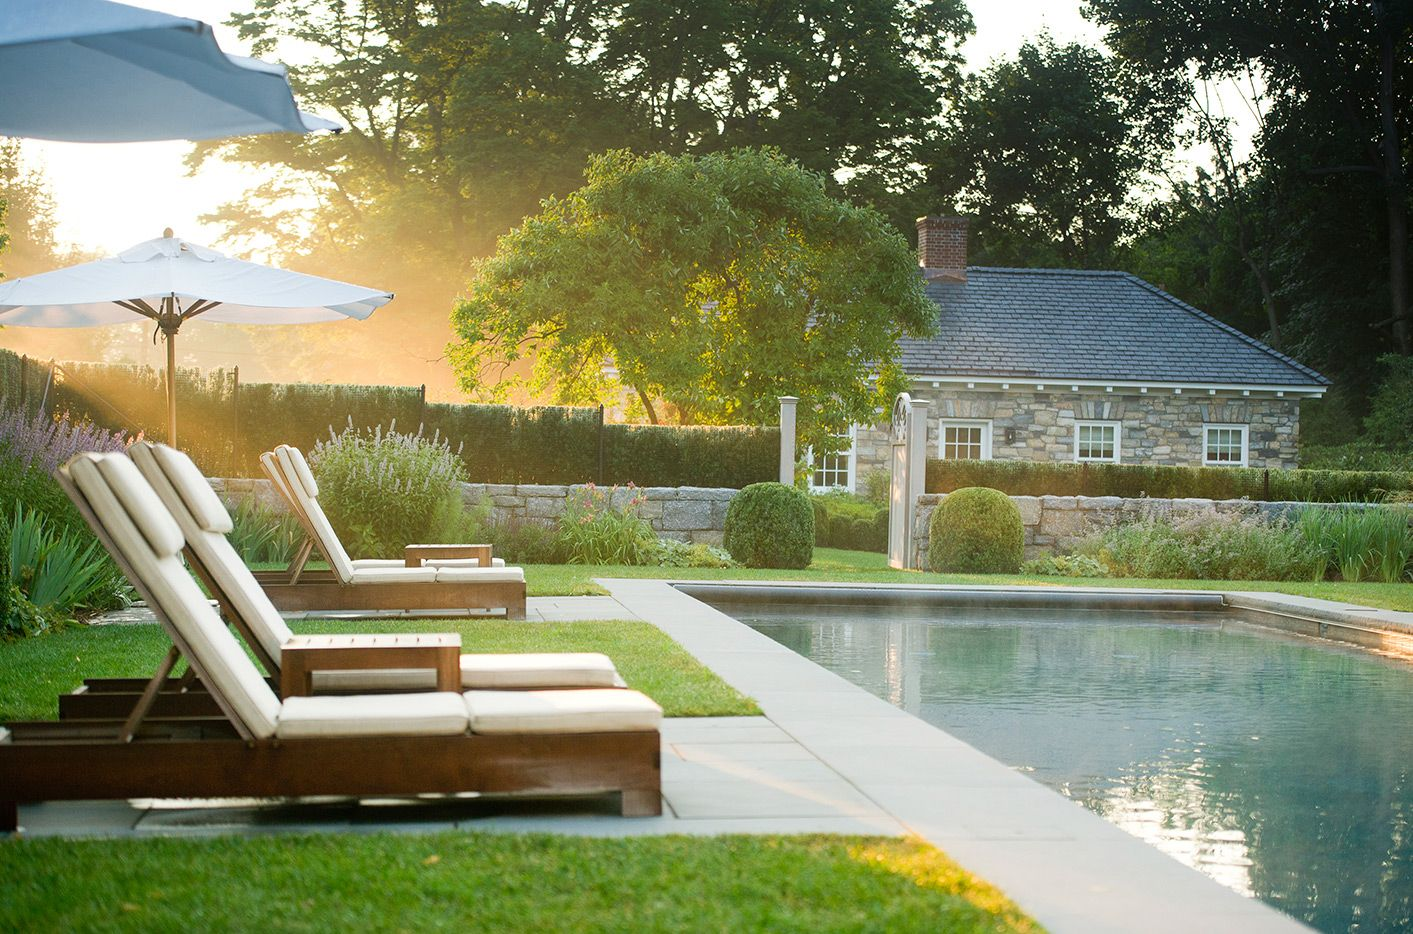 Captivating Landscape Designers   Greenwich, CT   Doyle Herman Design Associates |  Looks So Relaxing!